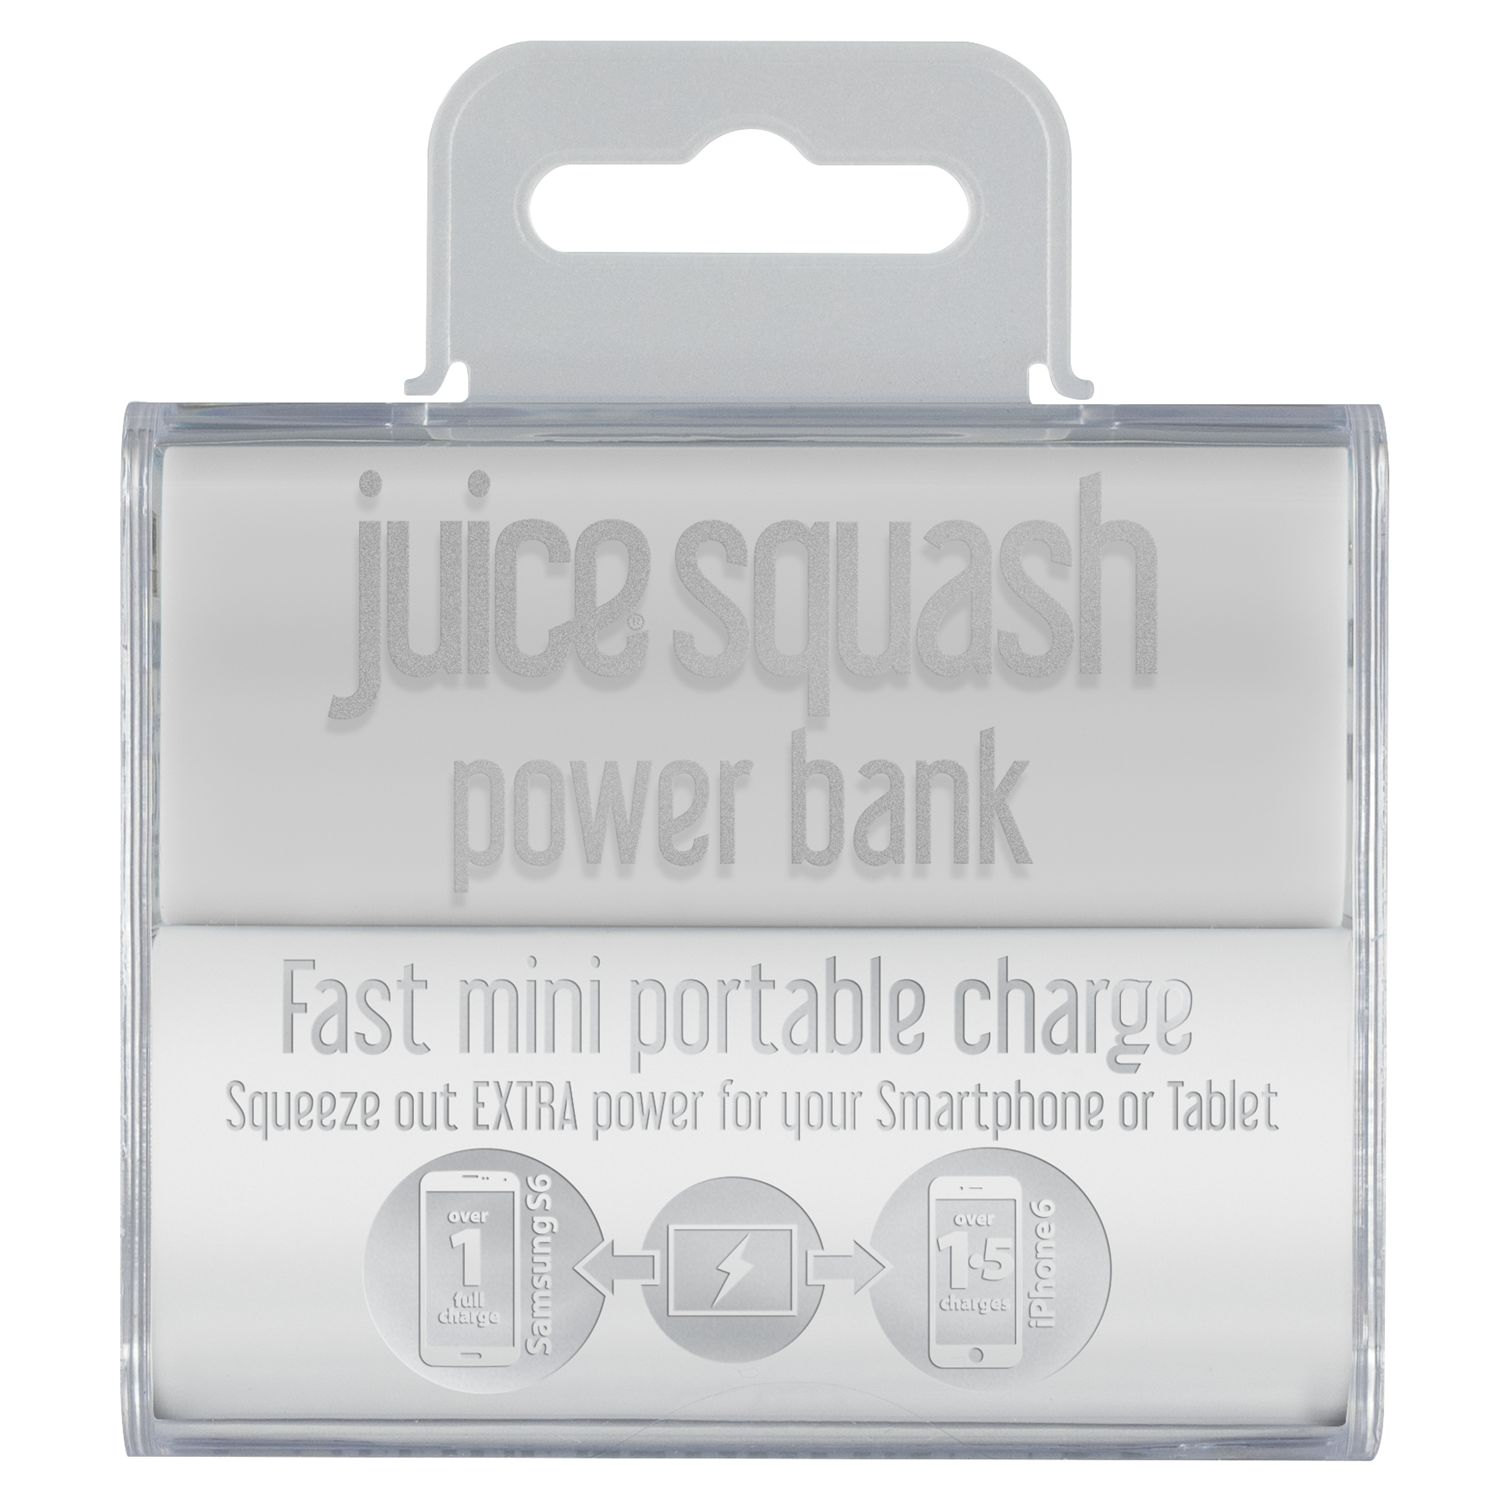 Juice Juice Squash Power Bank Portable Charger with Micro USB to USB Cable